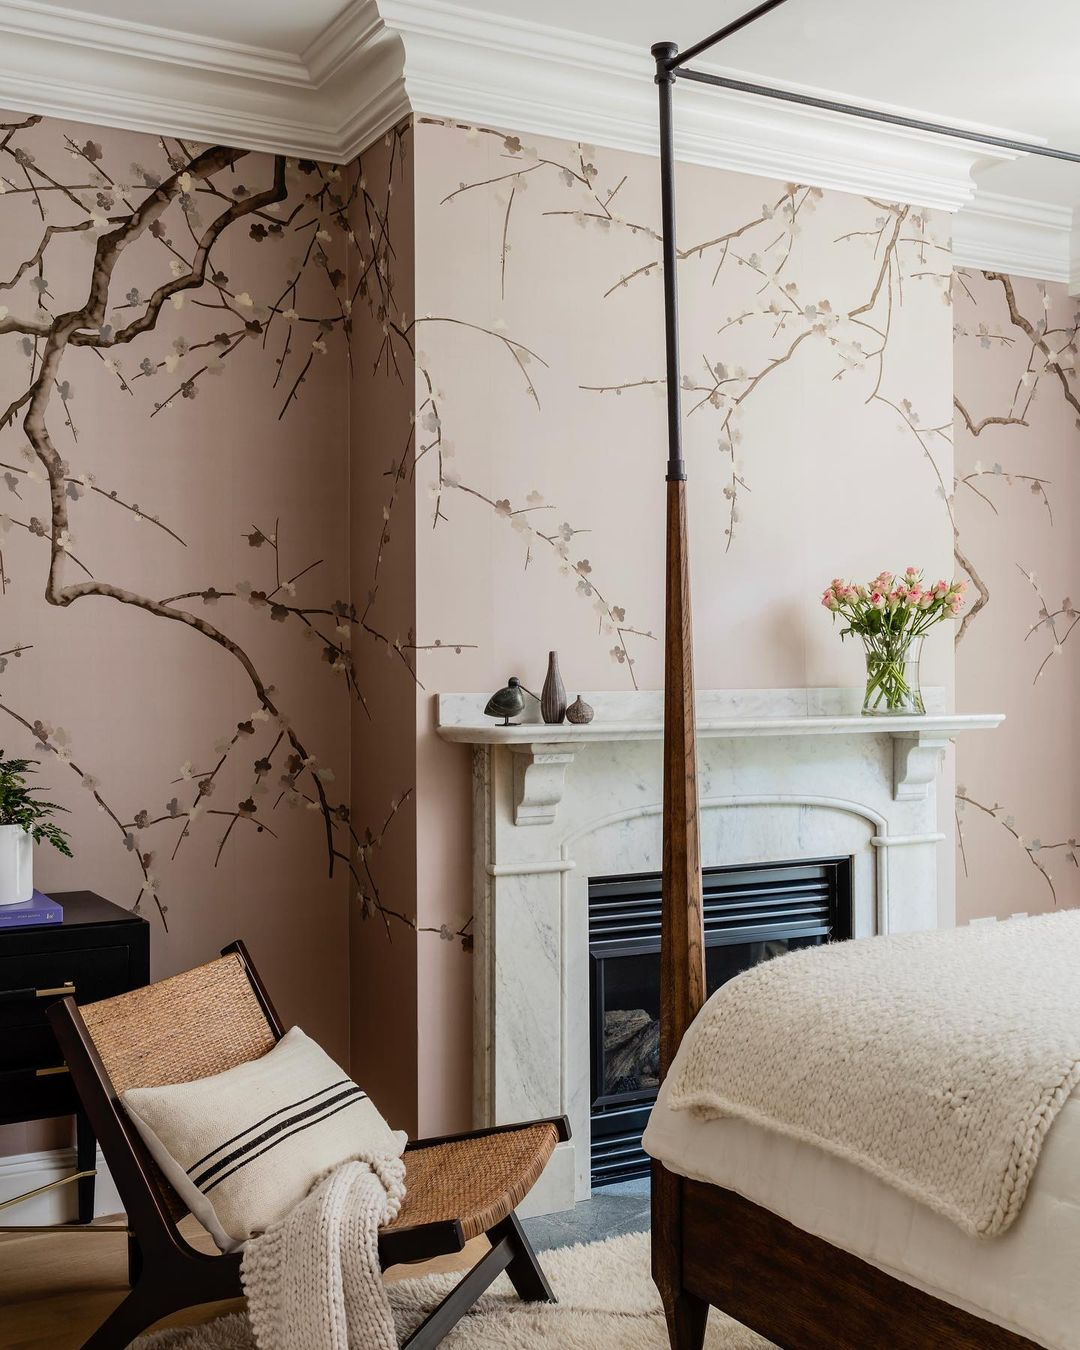 this is a japanese inspired wallpaper by de gournay